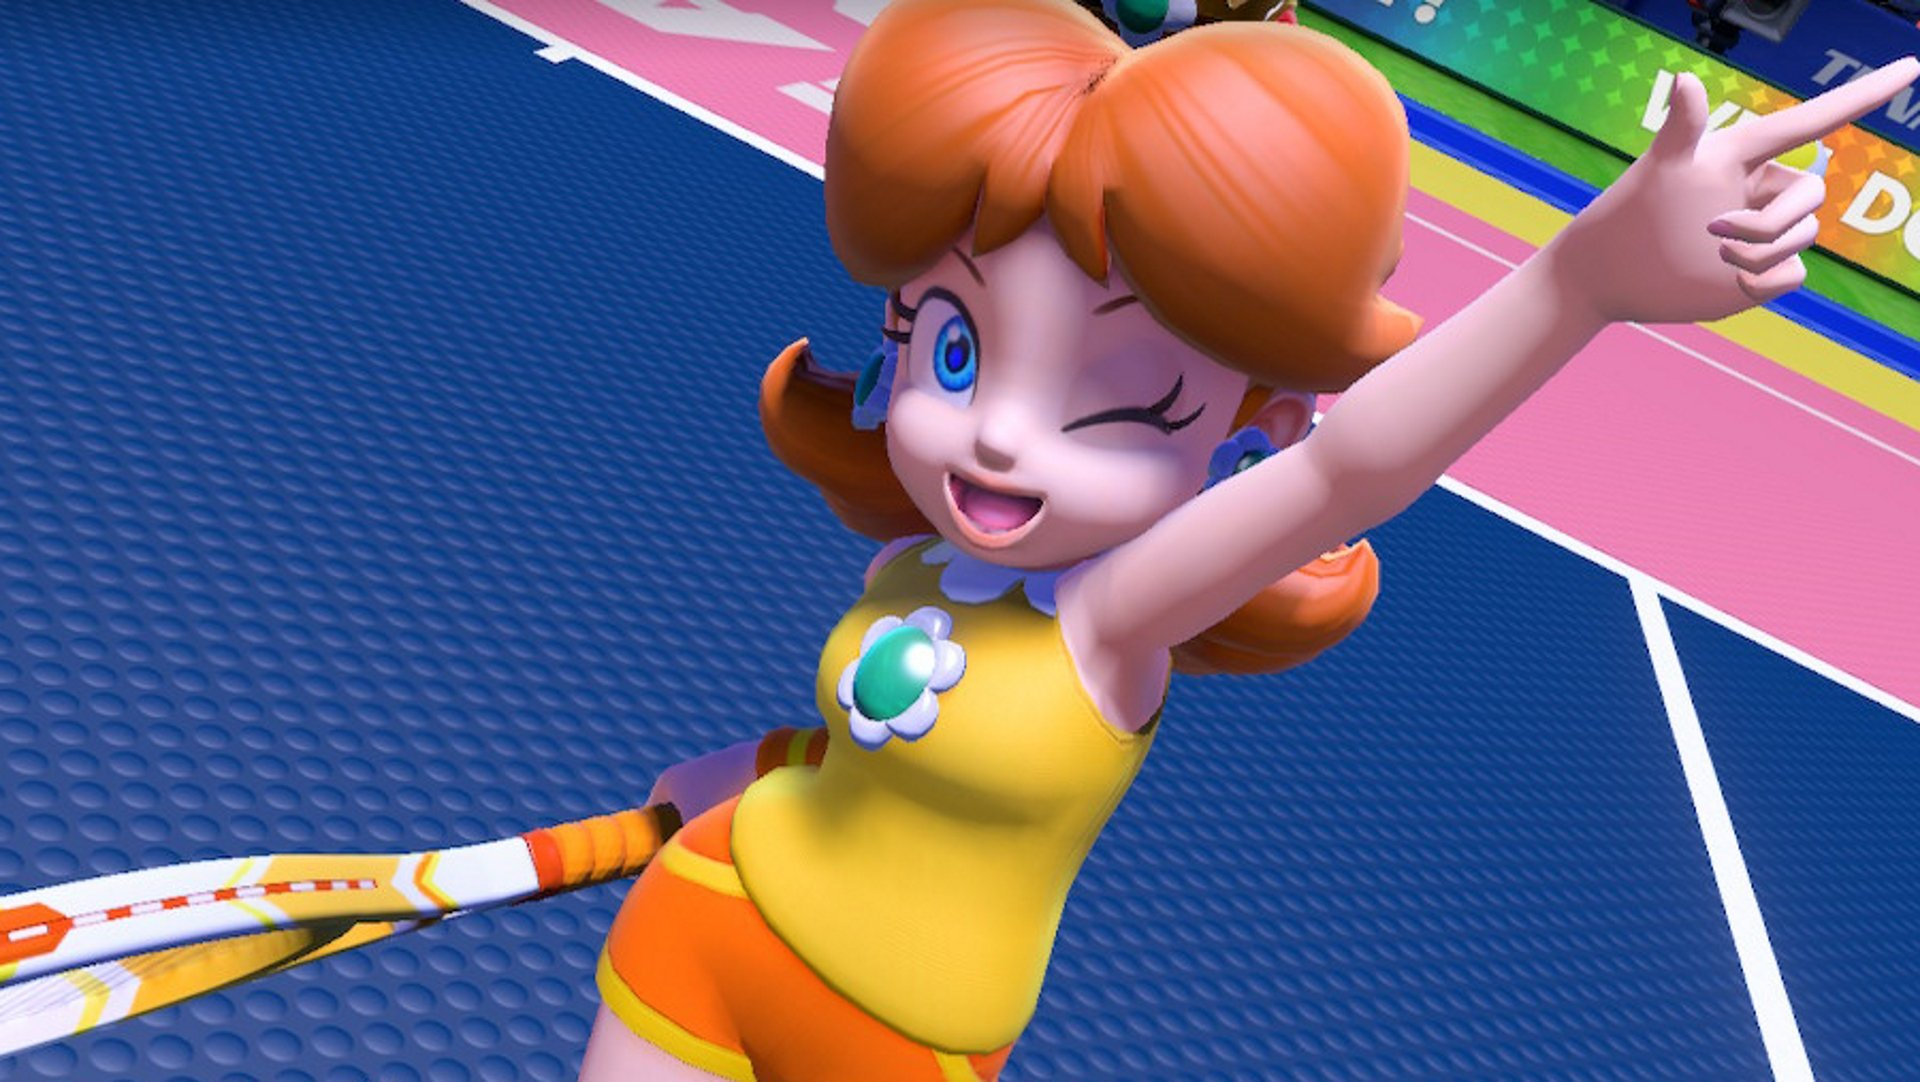 Daisy smiles for the Mario Tennis Aces Tier List